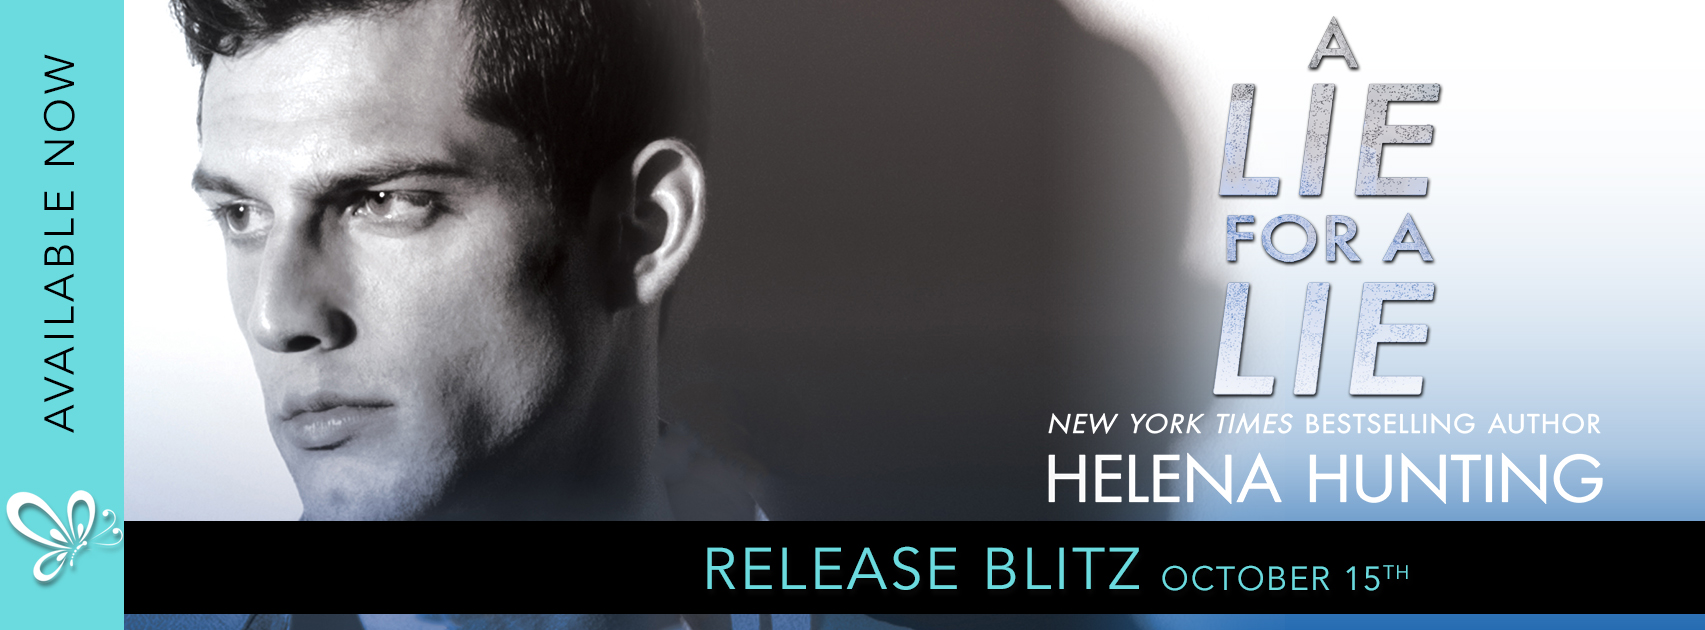 Release Blitz:  A Lie for a Lie by Helena Hunting